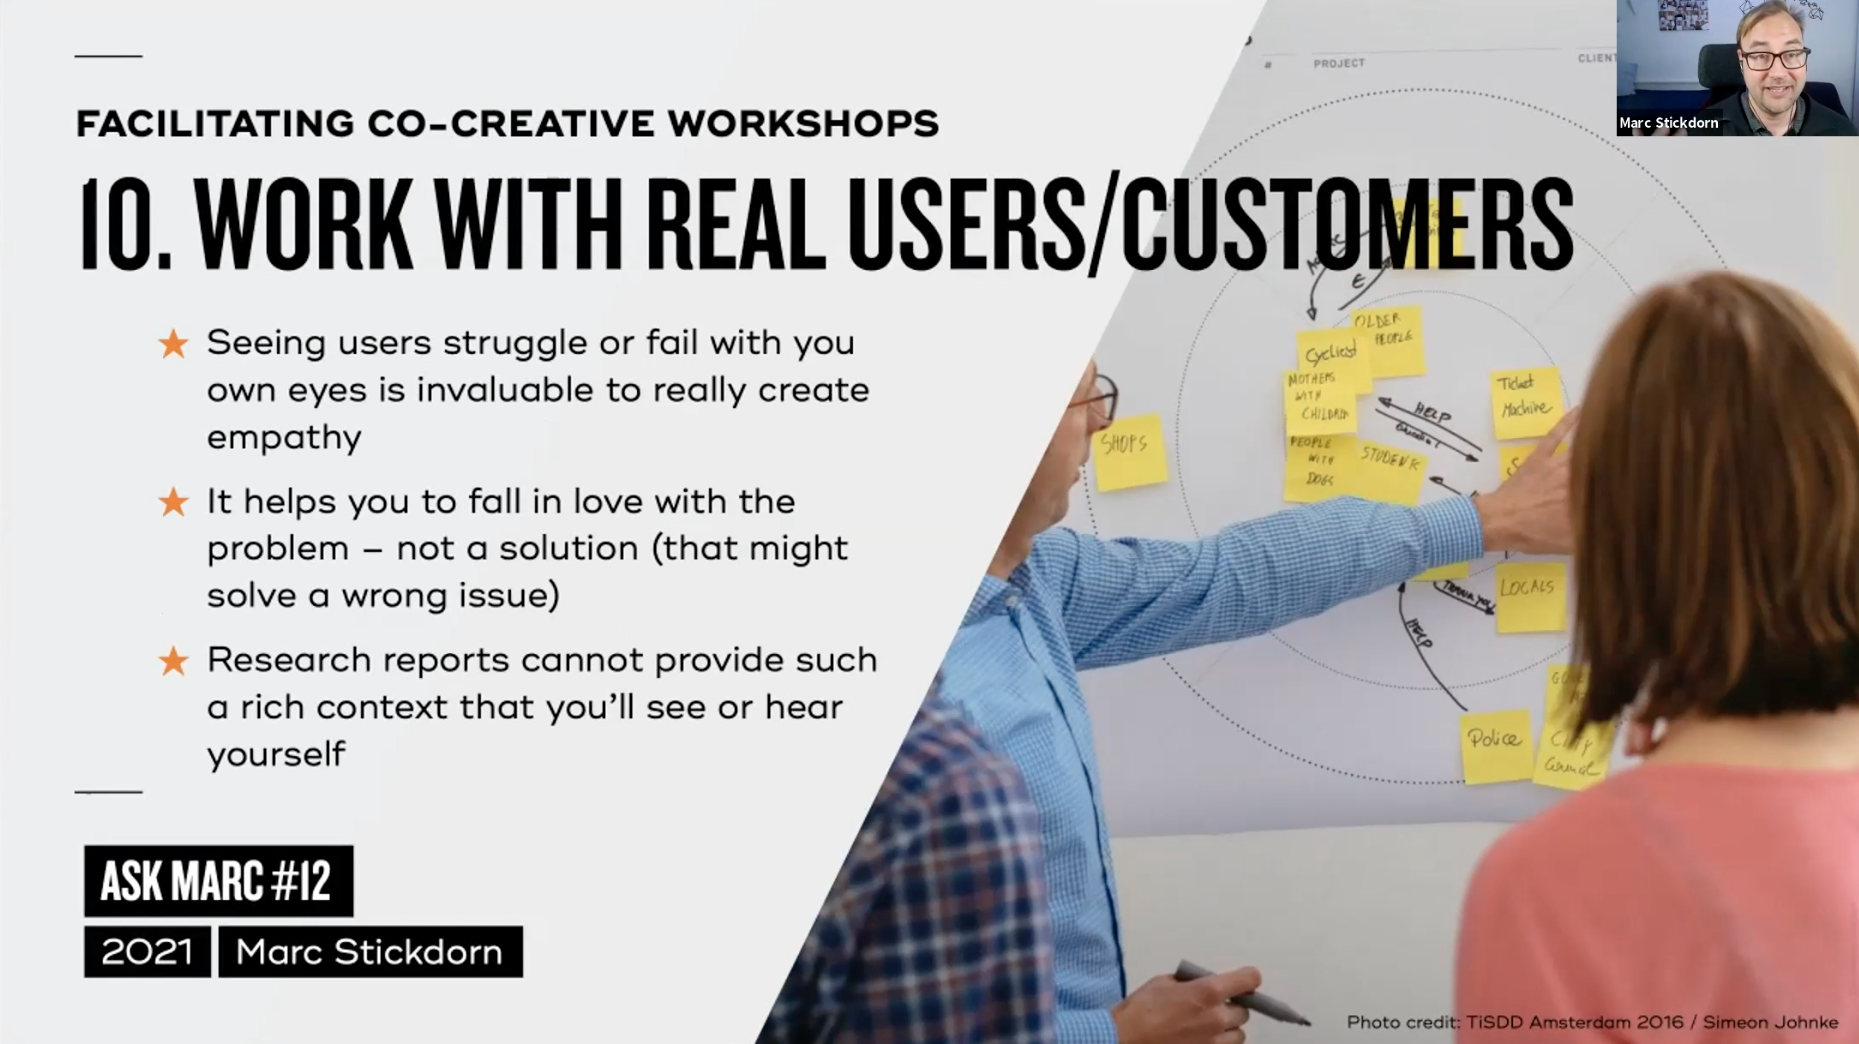 Tip 10: work with real users/customers